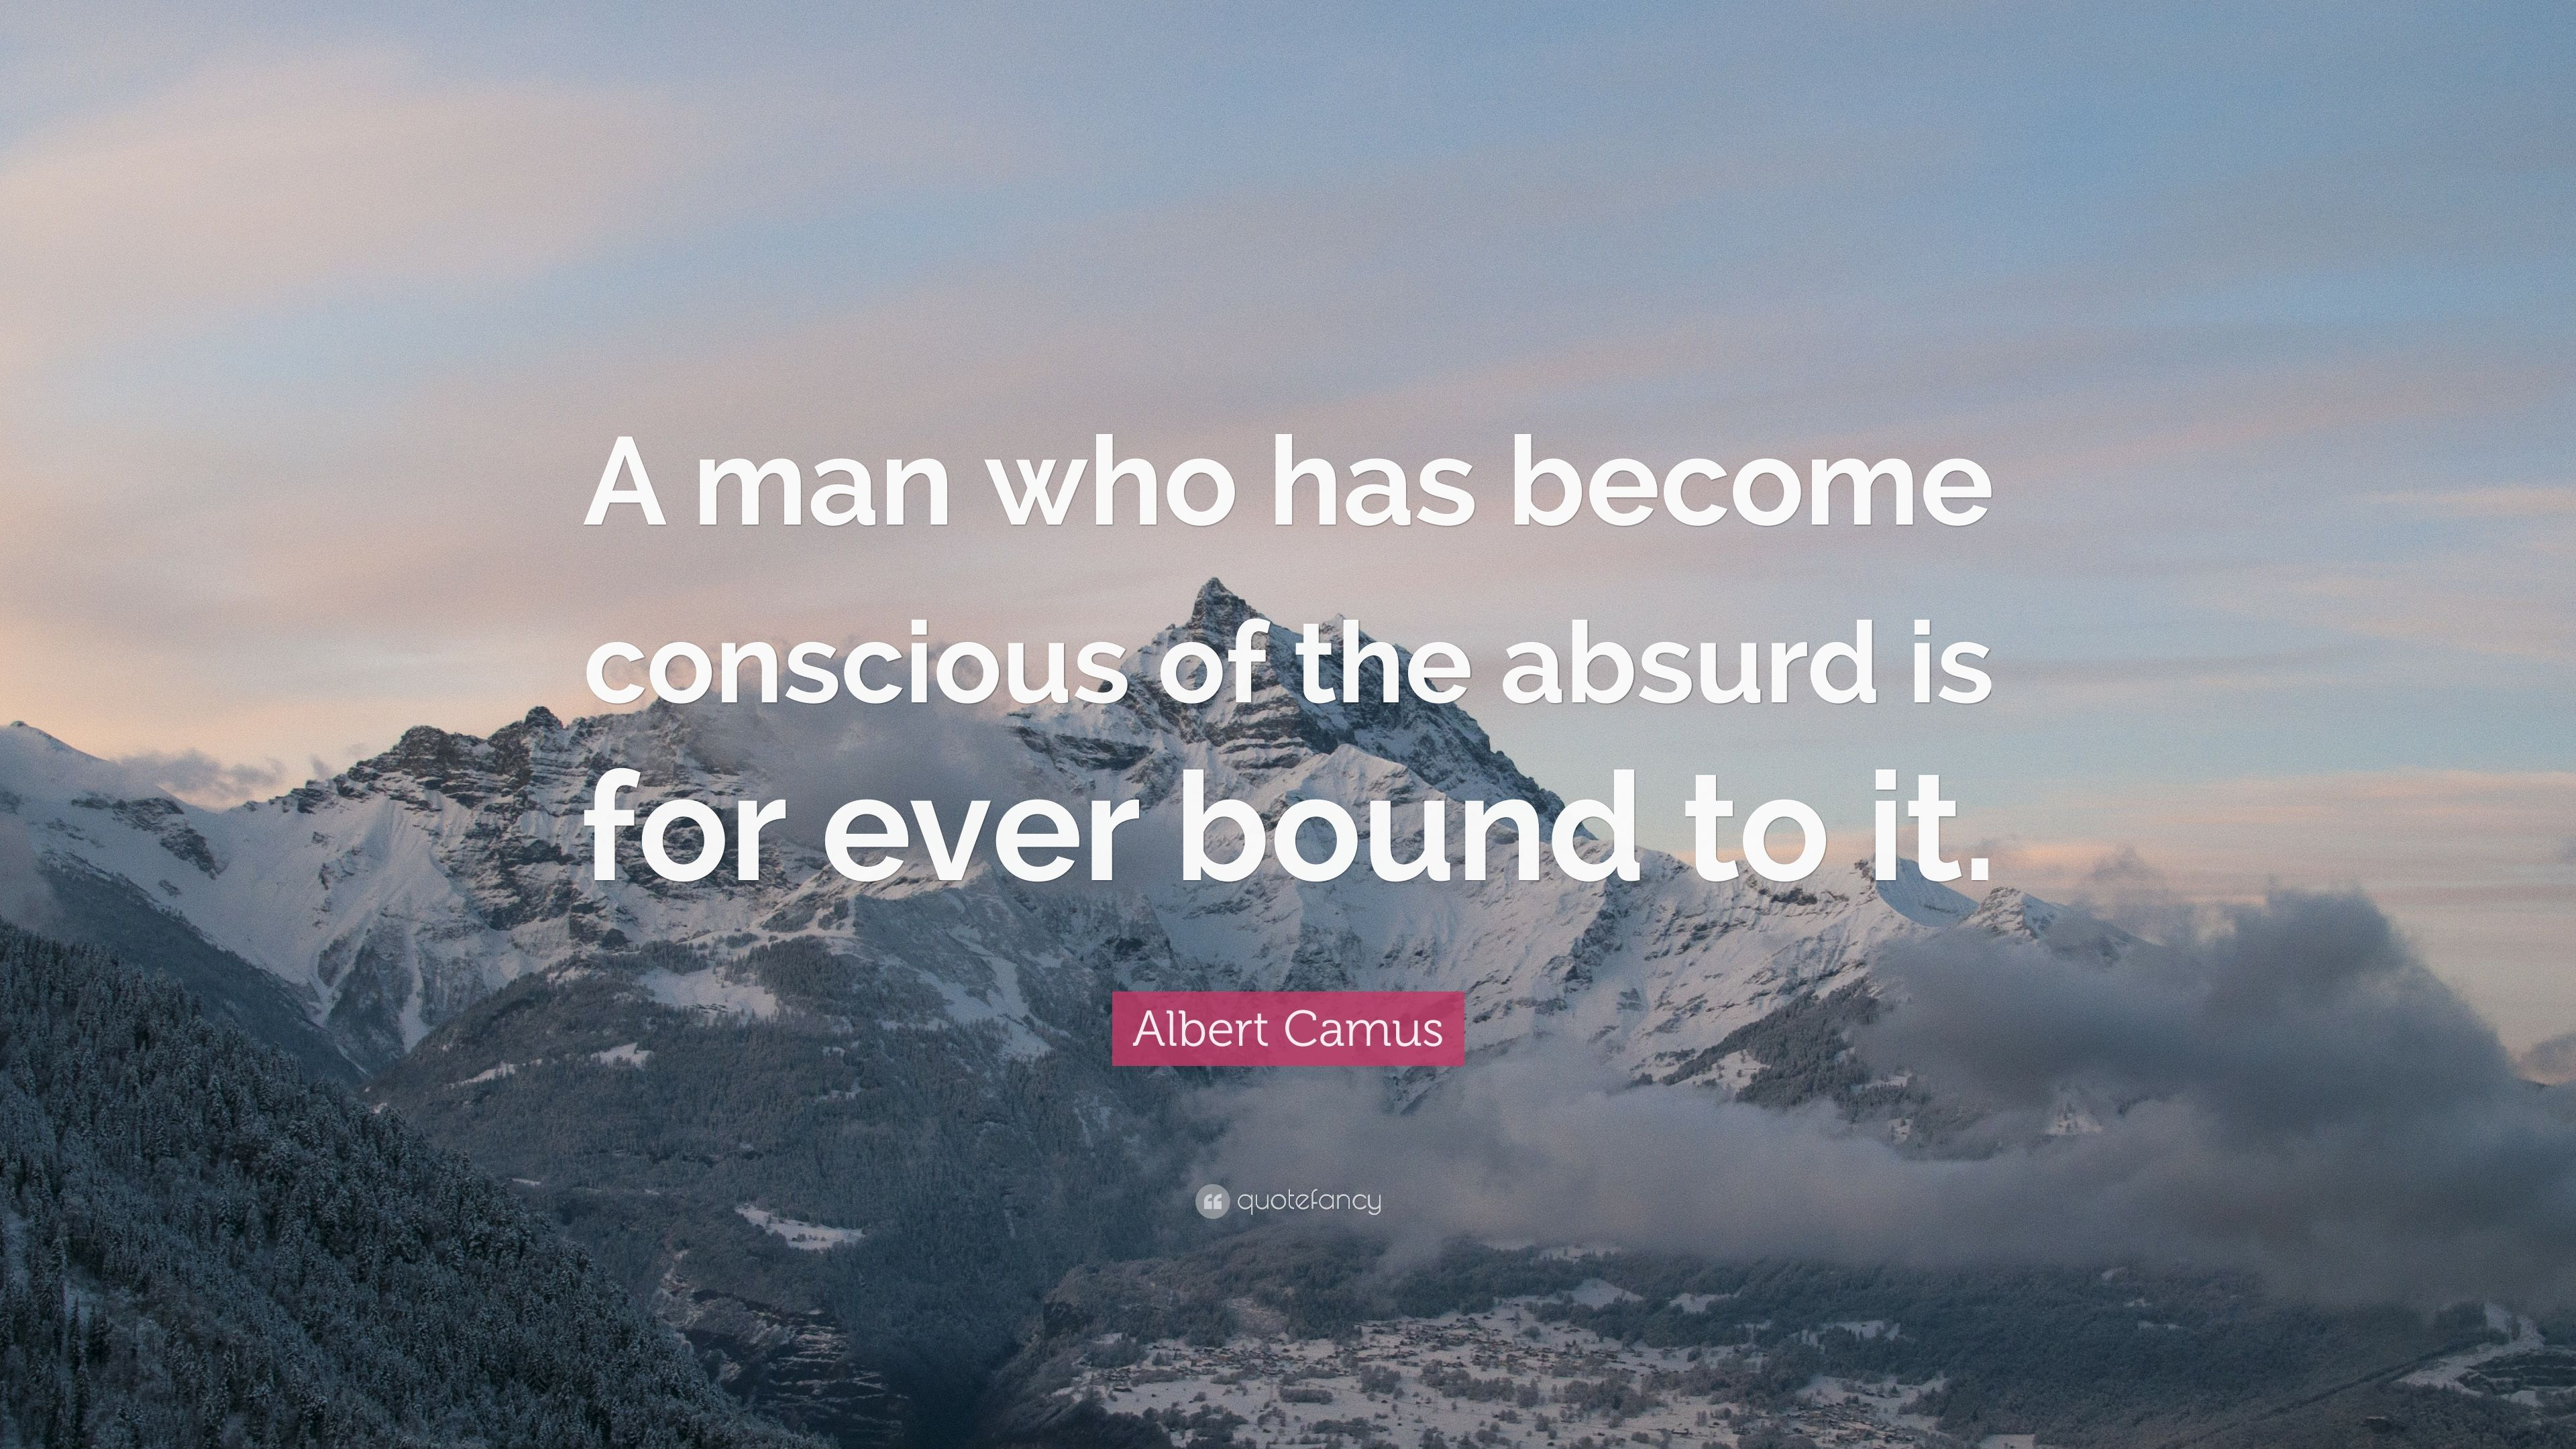 albert camus definition of the absurd man Definition of absurd in the definitionsnet dictionary meaning of absurd what does absurd mean  essential concept and the first truth--albert camus absurd.